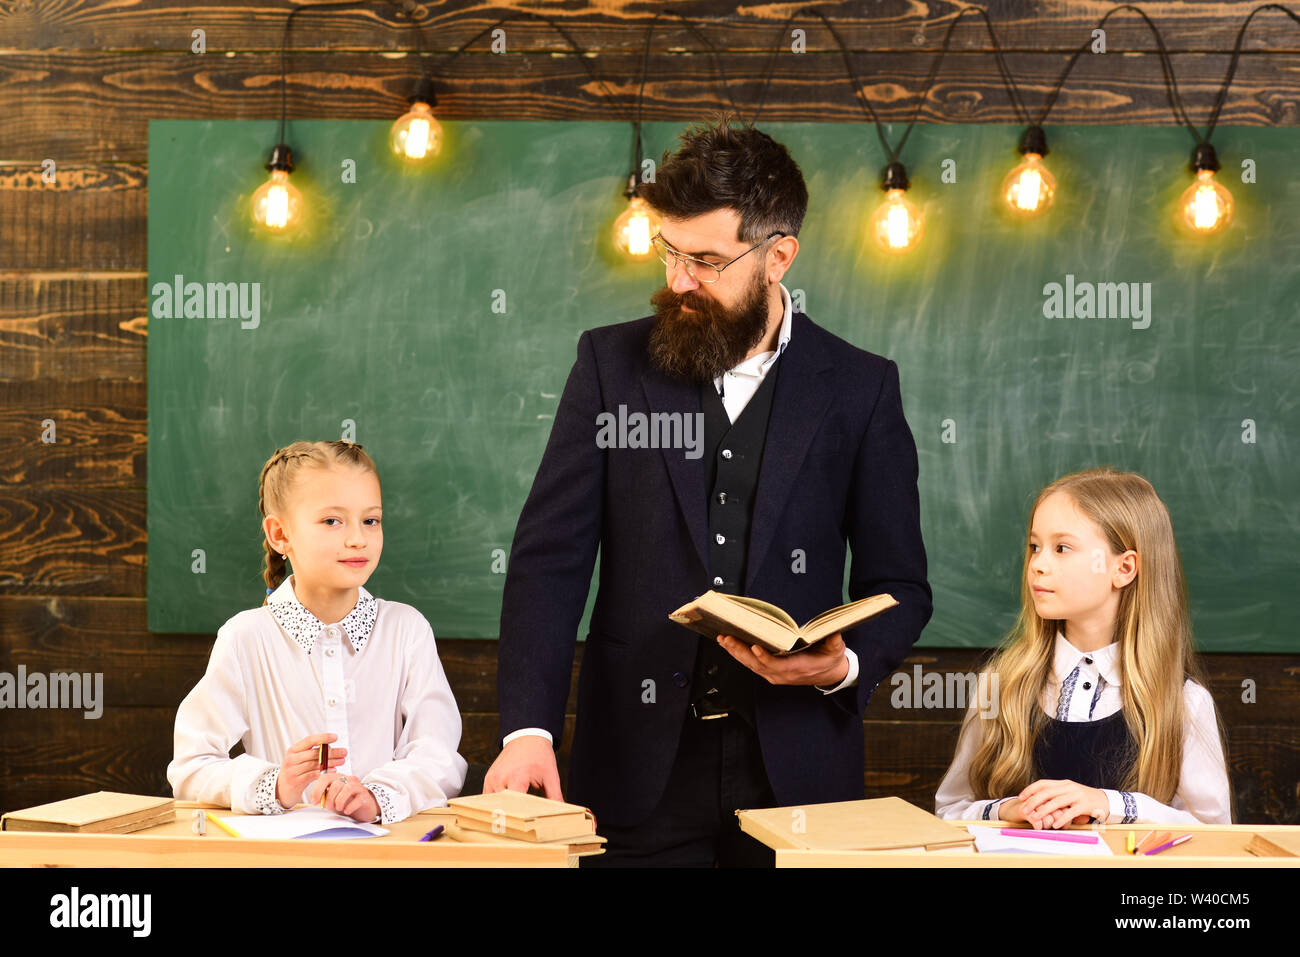 Parents usually put their kids into academic coaching. Attentive students writing something in their note pads while sitting at desks in the classroom - Stock Image